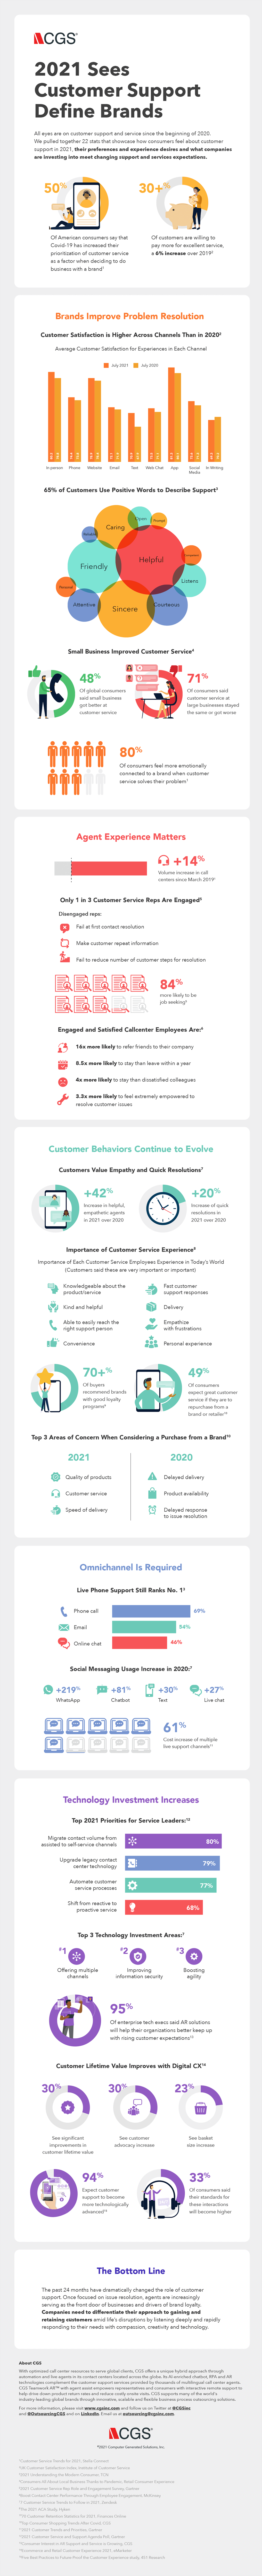 Infographic with statistics around 2021 customer support trends